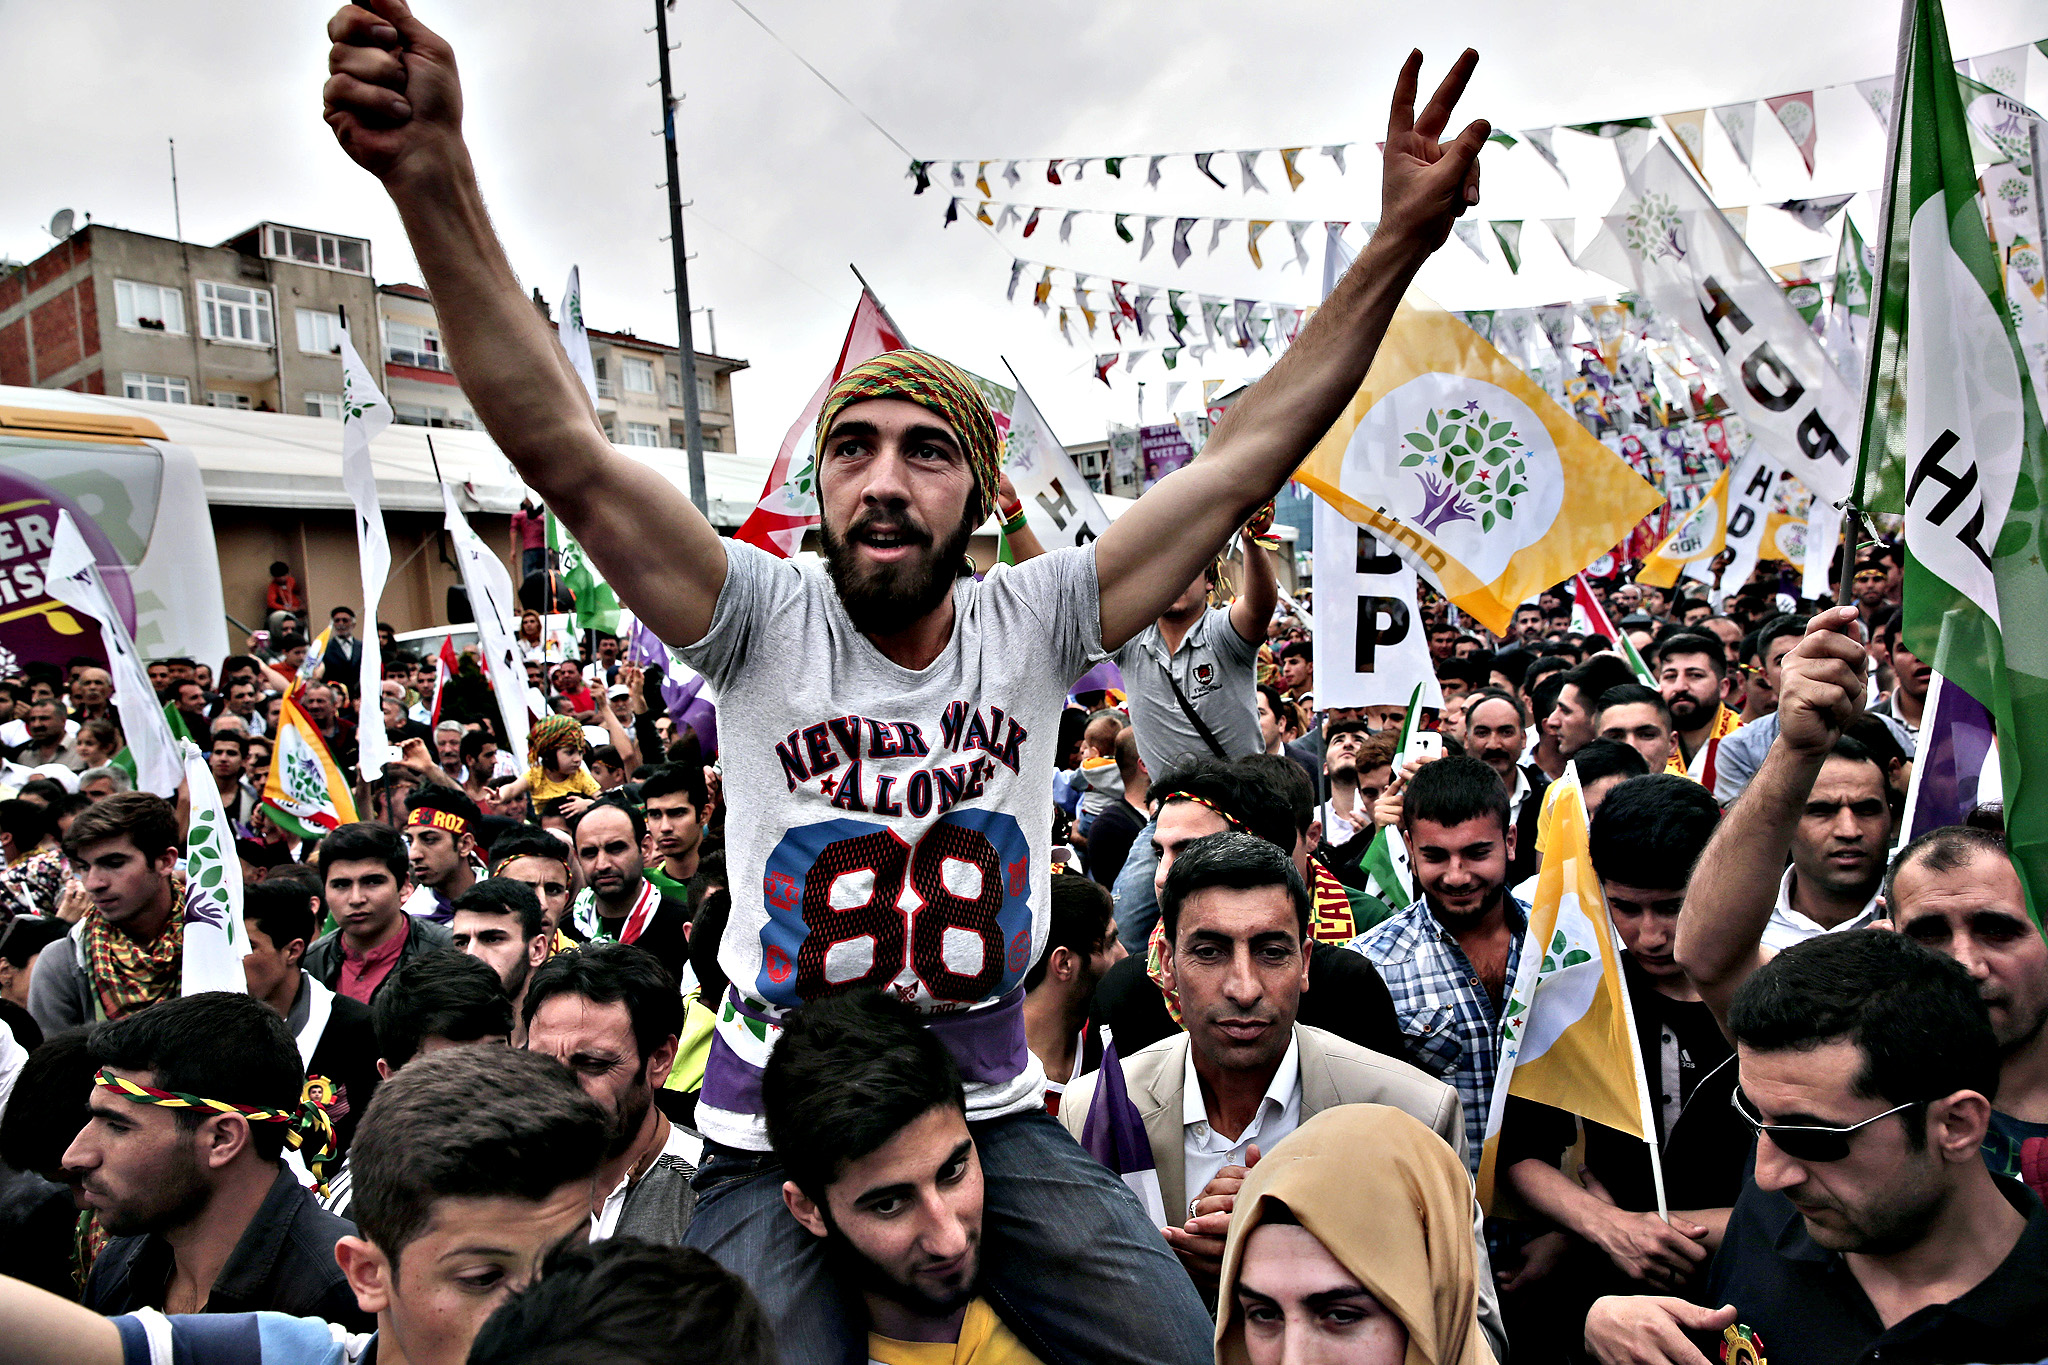 Supporters of the pro-Kurdish People's Democratic Party (HDP) wait for the appearance Selahattin Demirtas, co-chair of the party to deliver an election campaign speech during a rally in Istanbul, Turkey, Thursday, May 21, 2015, before Turkey's general election on June 7.  The ADP is a small party, but if it gains 10 percent of the vote it will enter parliament as a party, and could change the face of the country's politics